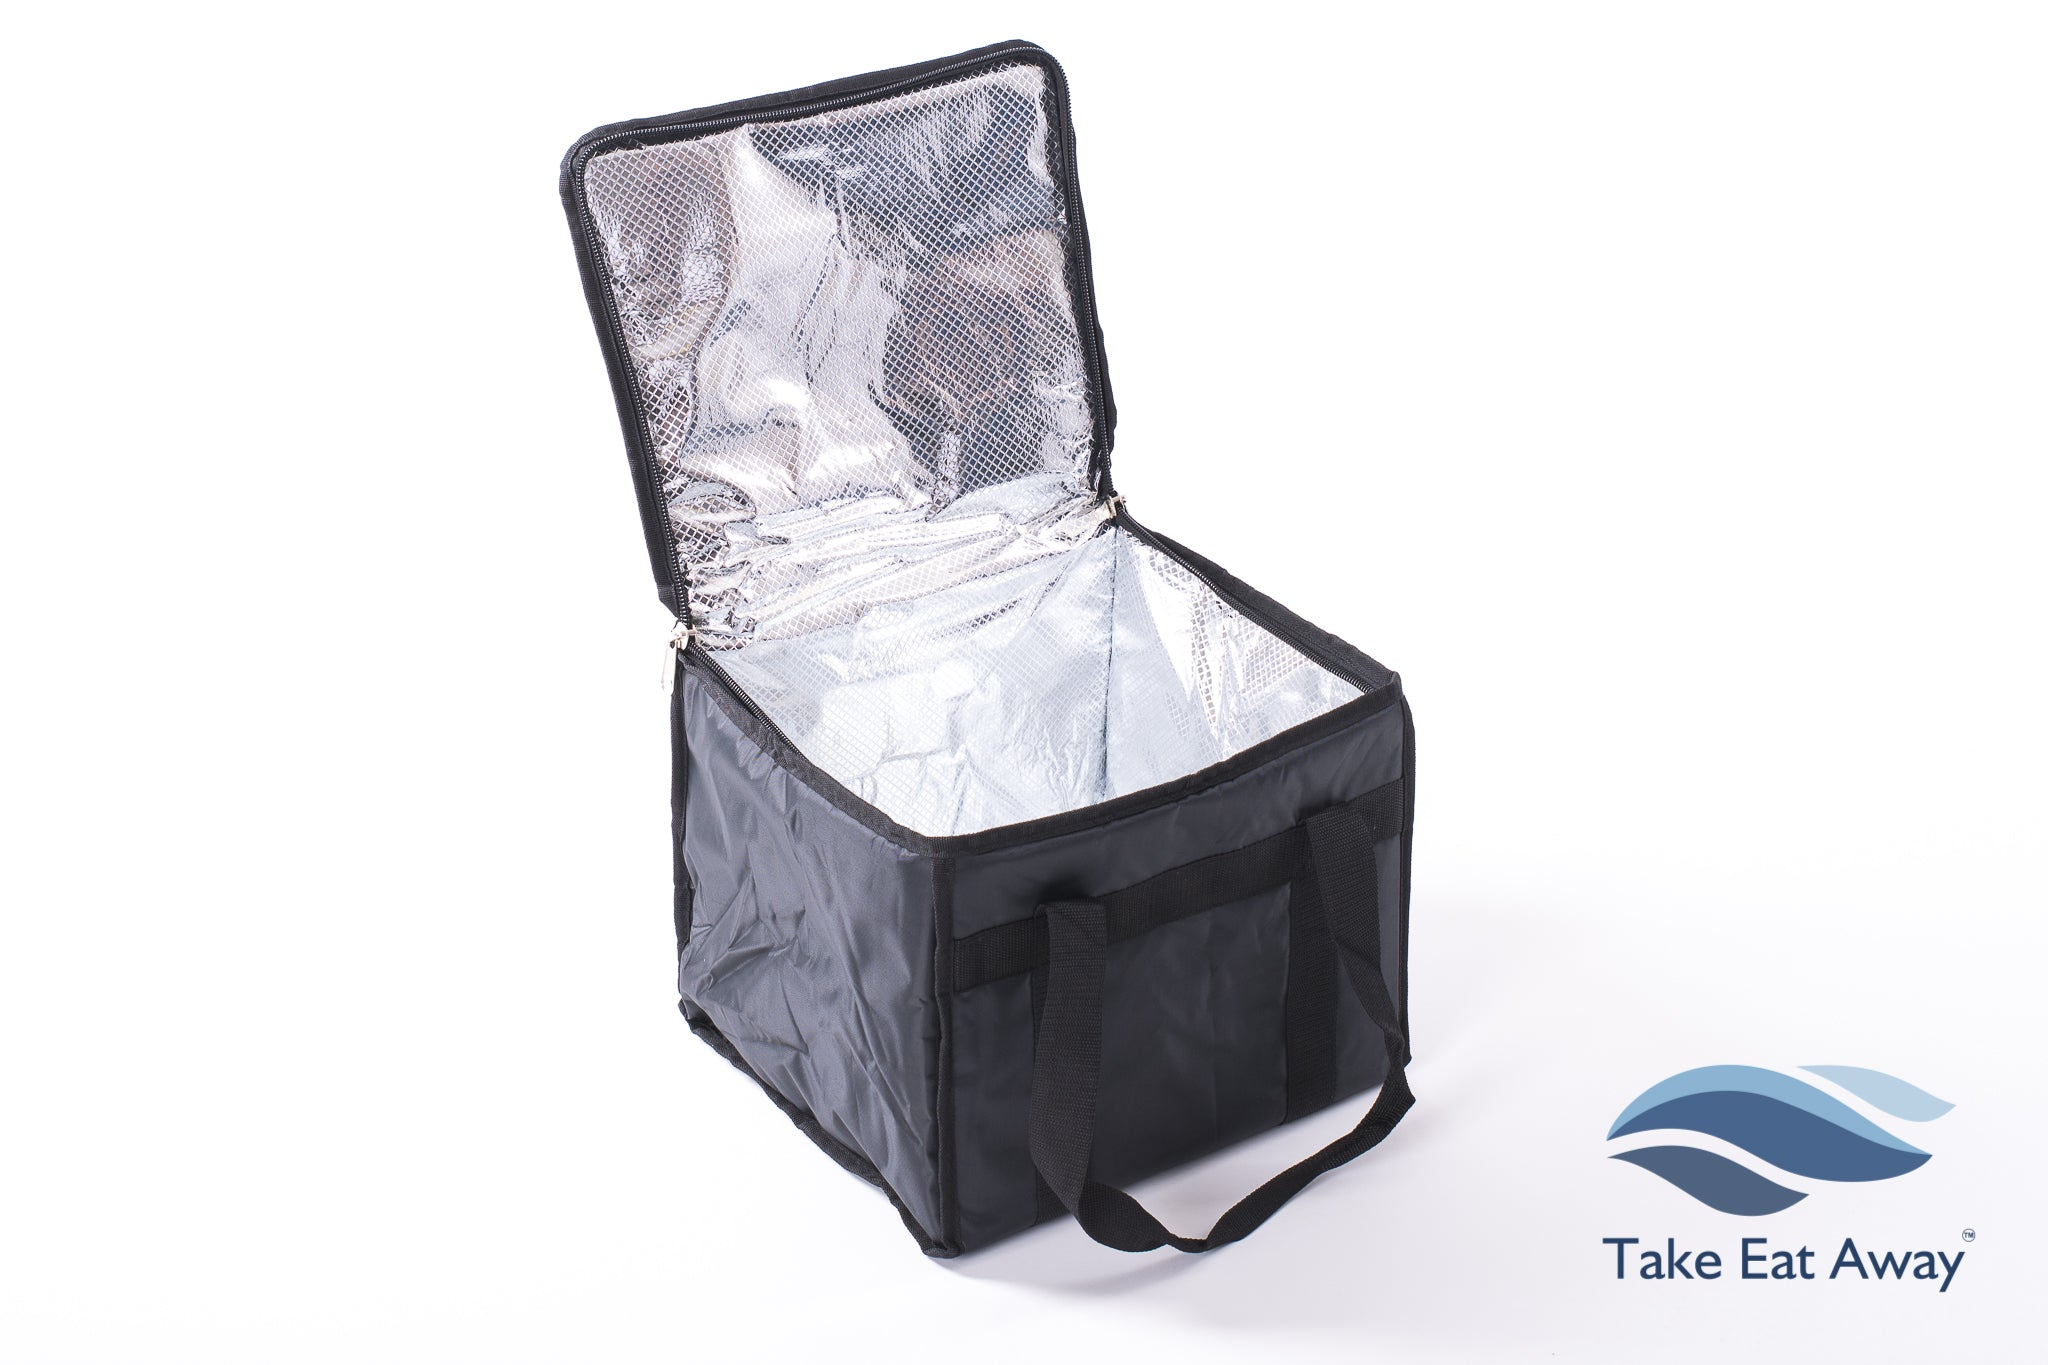 *CC6 Food Delivery Bags- 2 Bags- Insulated Hot/Cold Deliveries Bags T8/T17